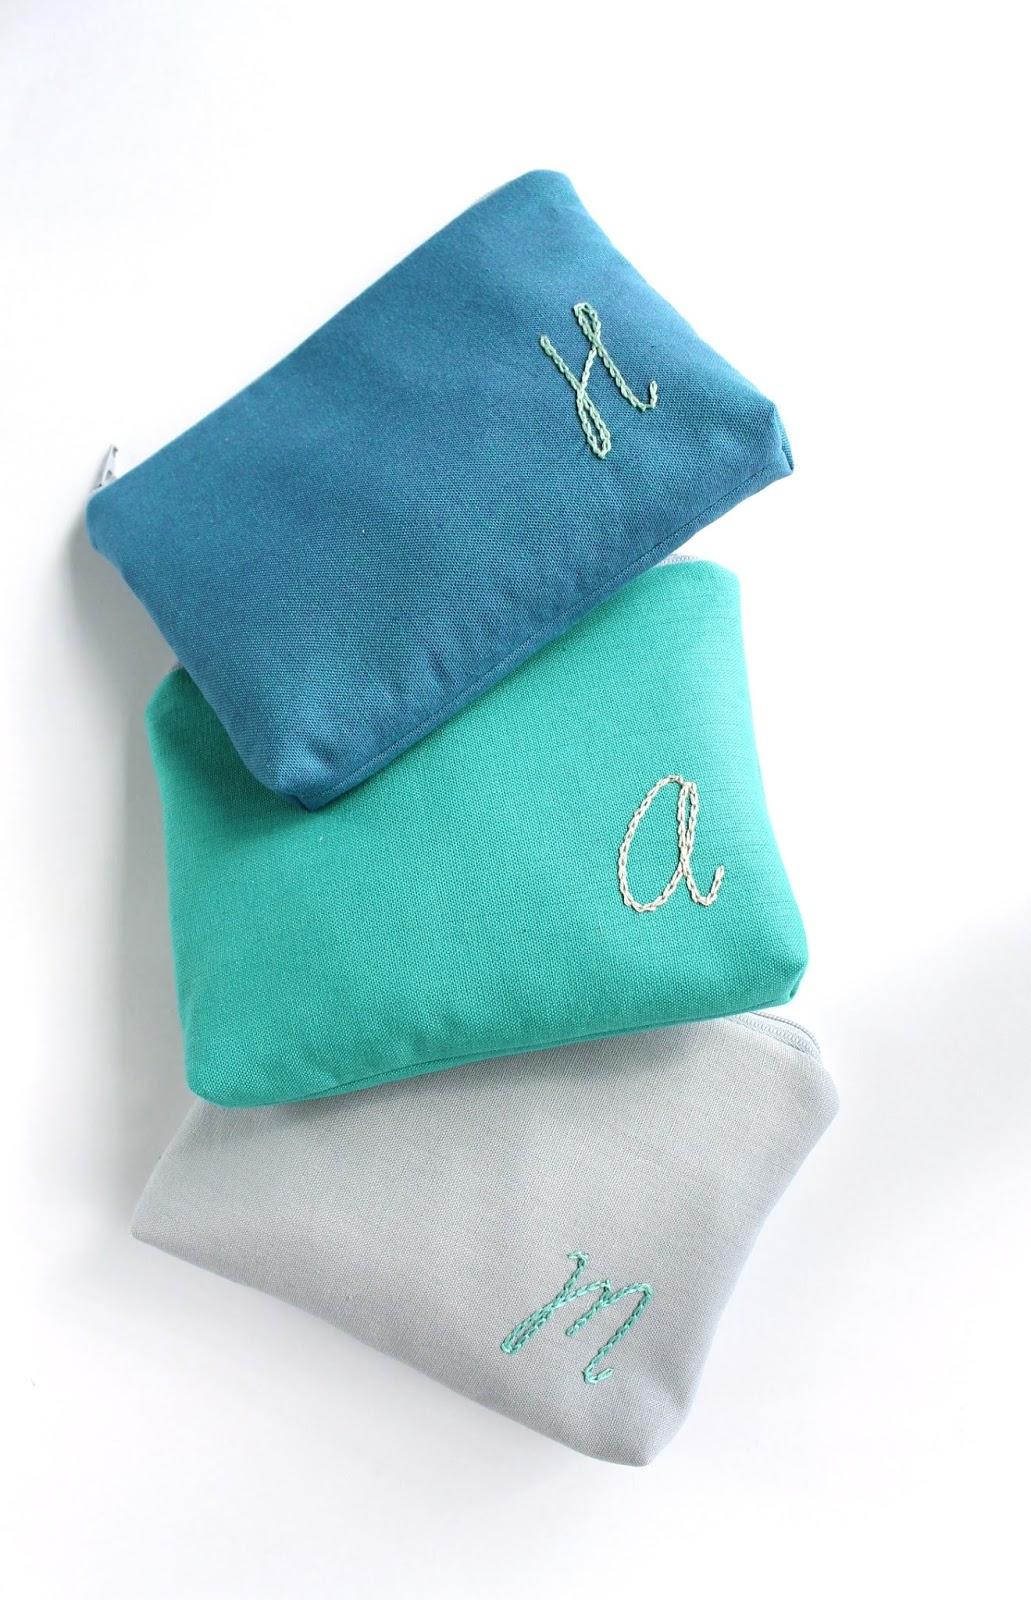 monogram cosmetic bags by allisa jacobs